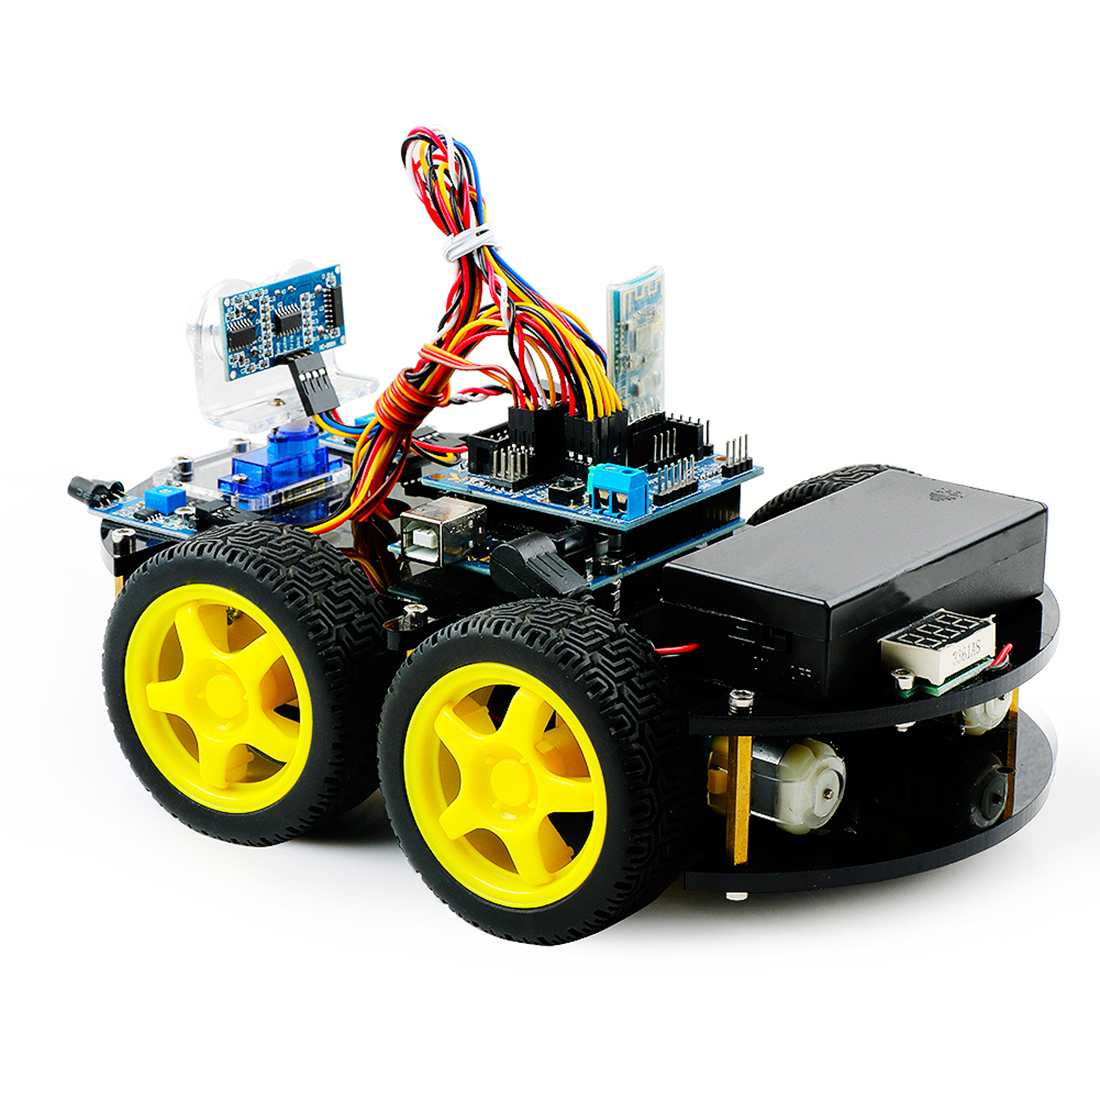 DIY Obstacle Avoidance Smart Programmable Robot Car Educational Learning Kit For Arduino UNO Interactive Game Educational Toys